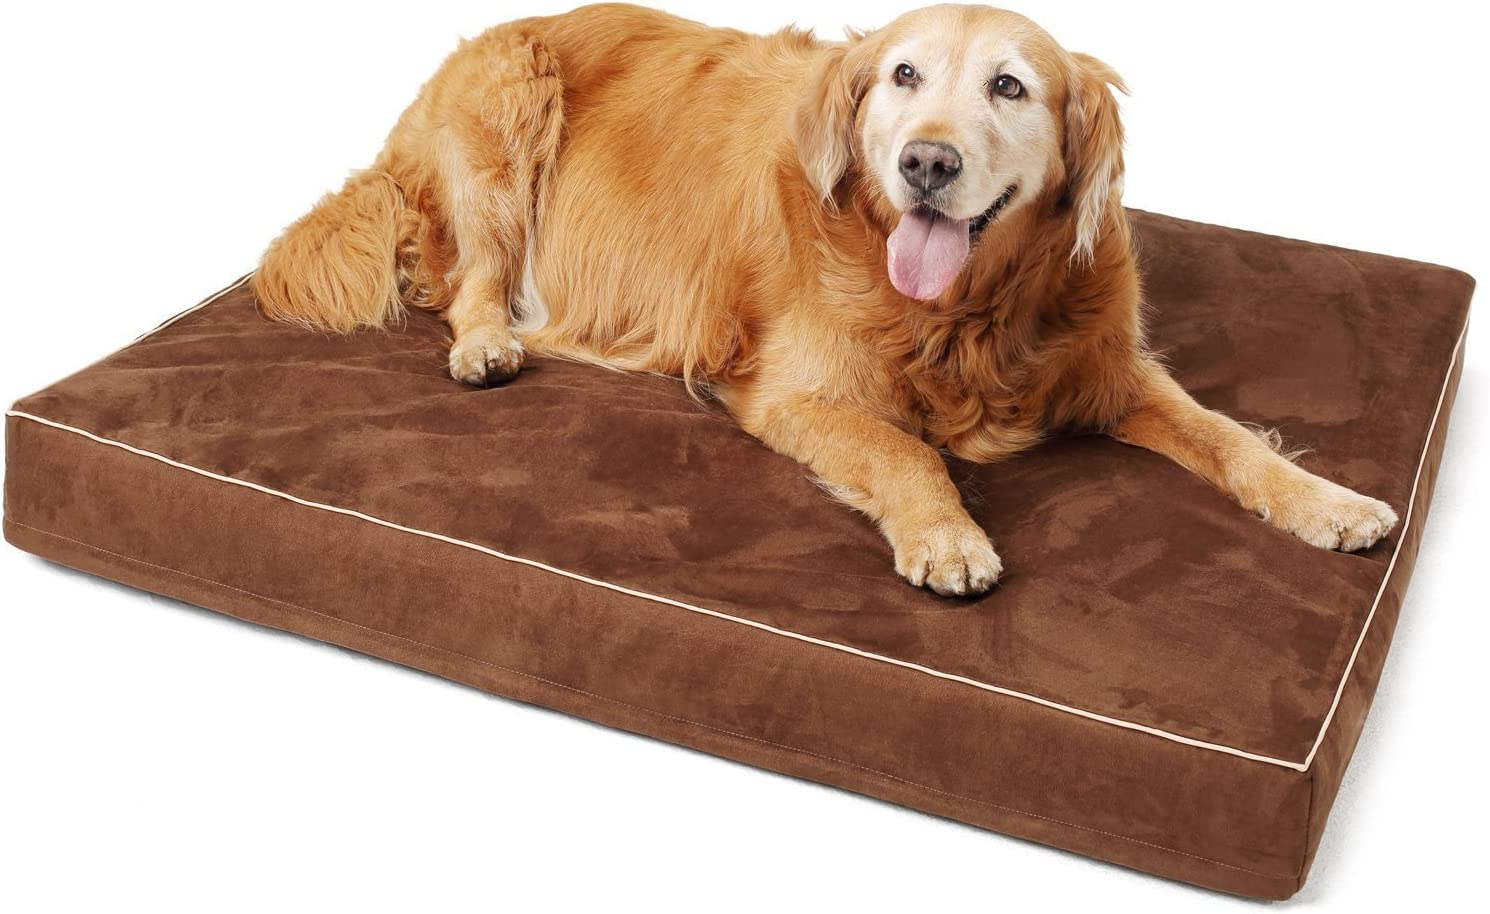 Papa Pet Orthopedic Dog Bed with Solid Memory Foam, True Waterproof Lining, Removable Suede Cover, Prevent Relieve Pain of Arthritis Hip Dysplasia, Premium Edition